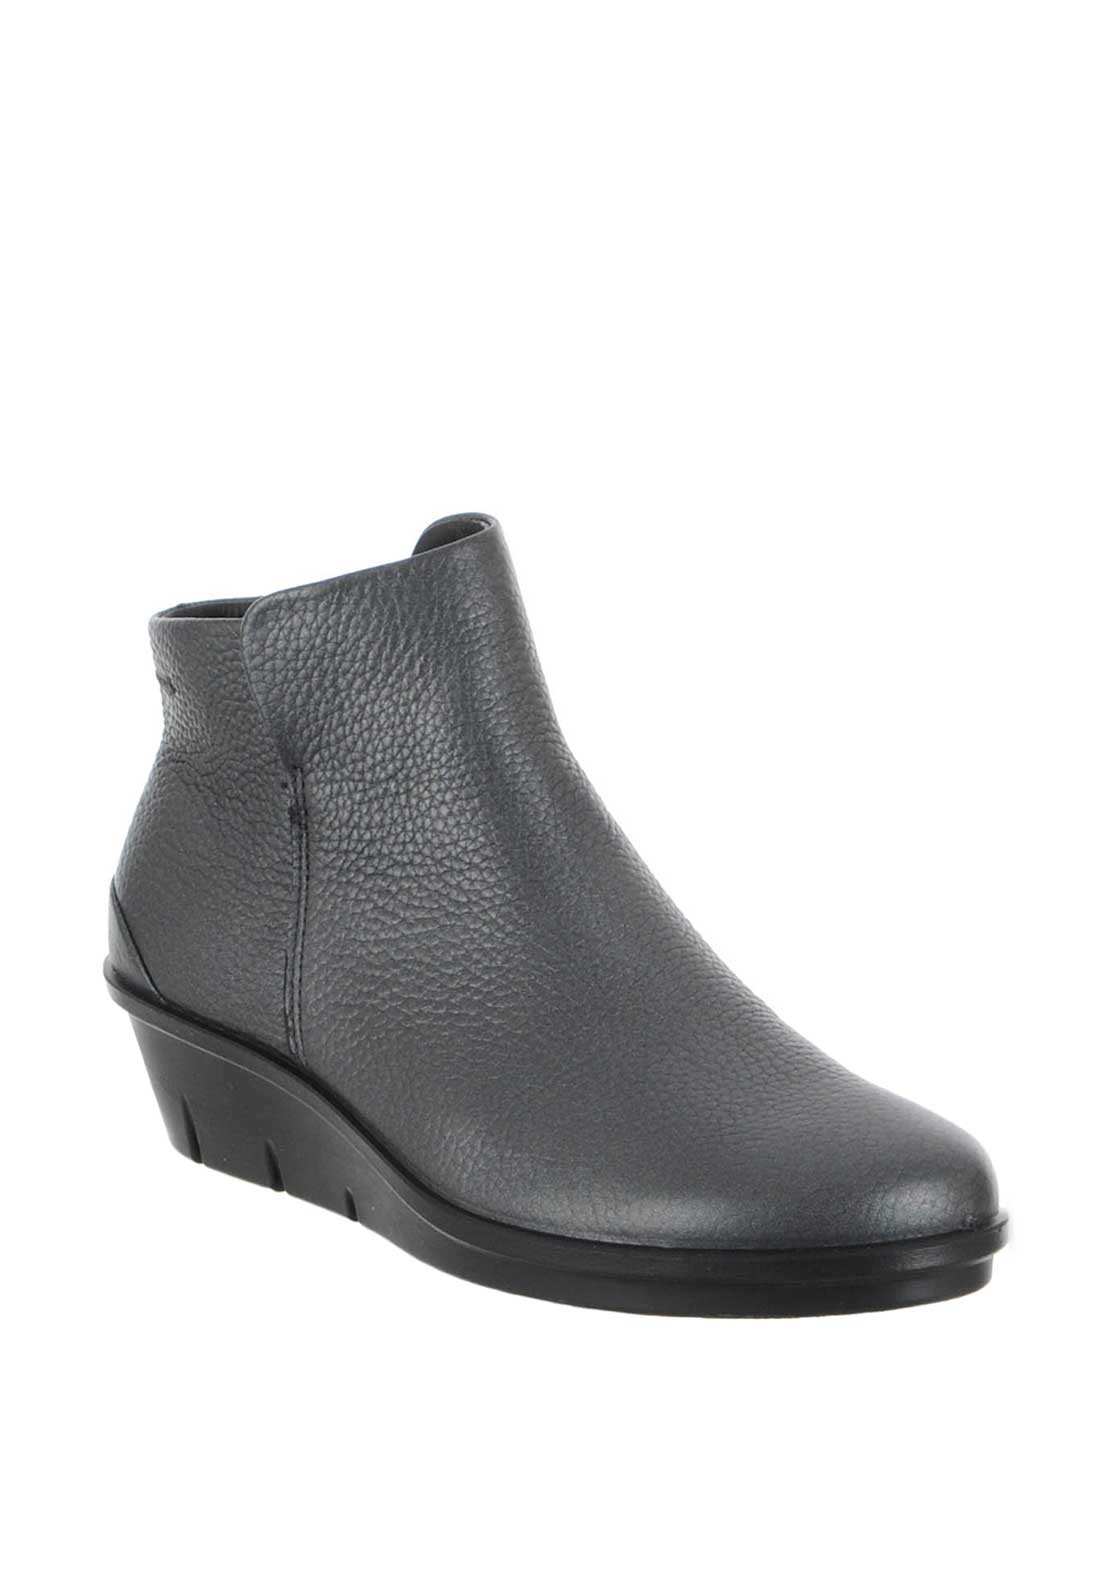 Ecco Womens Skylar Leather Ankle Boots, Grey